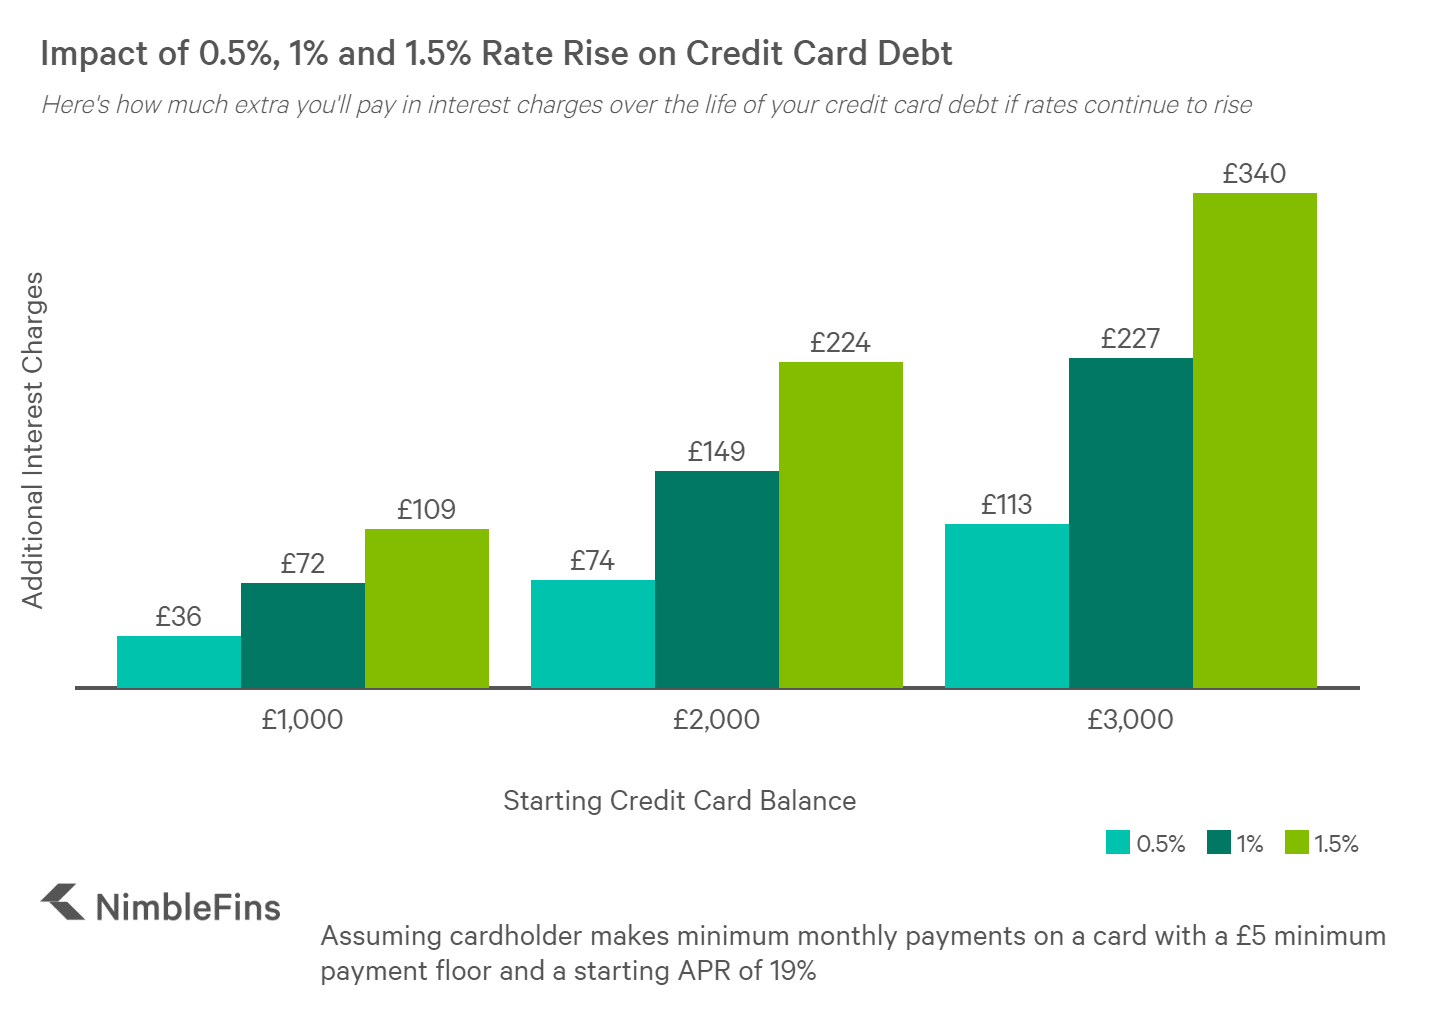 chart showing impact of rate rises on credit card debt